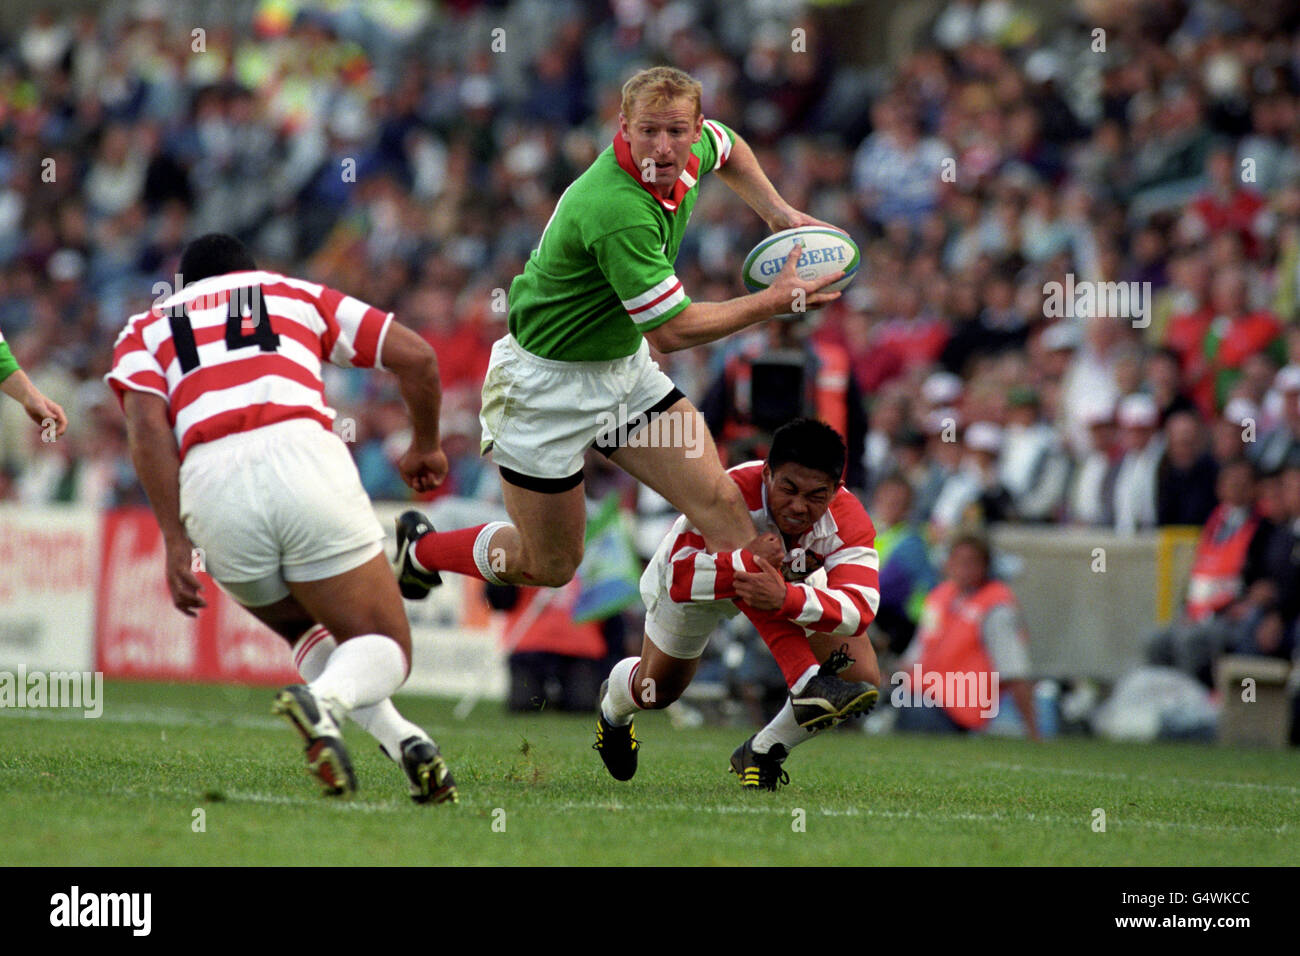 Rugby Union - World Cup 1995 - Pool C - Wales v Japan - Free State Stadium, Bloemfontein Stock Photo